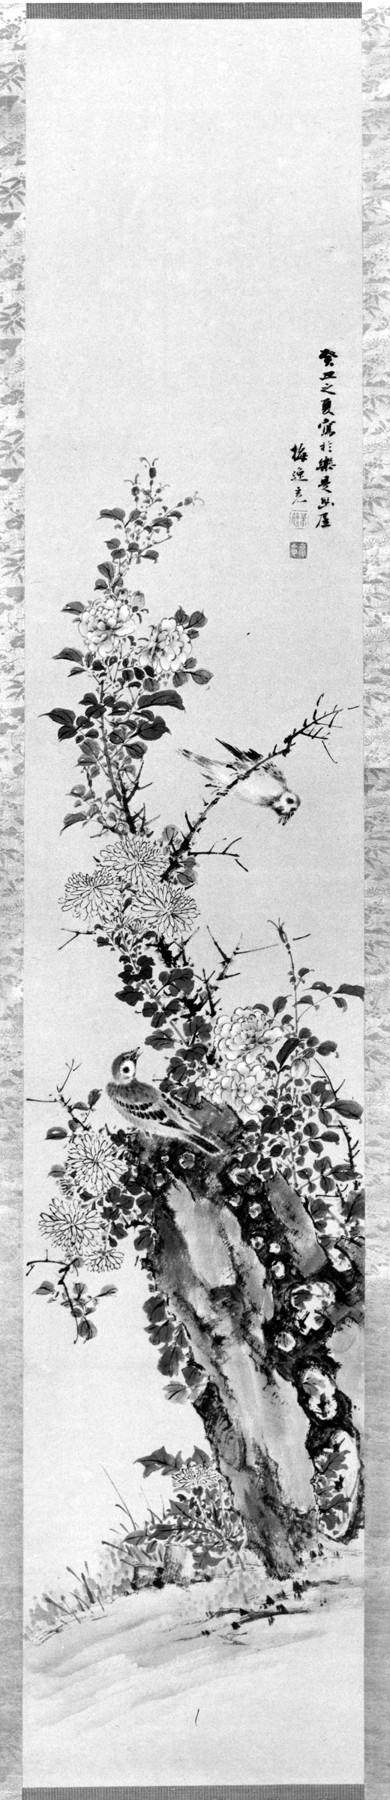 Scroll Painting with Sparrows, Flowering Plants, and Rock